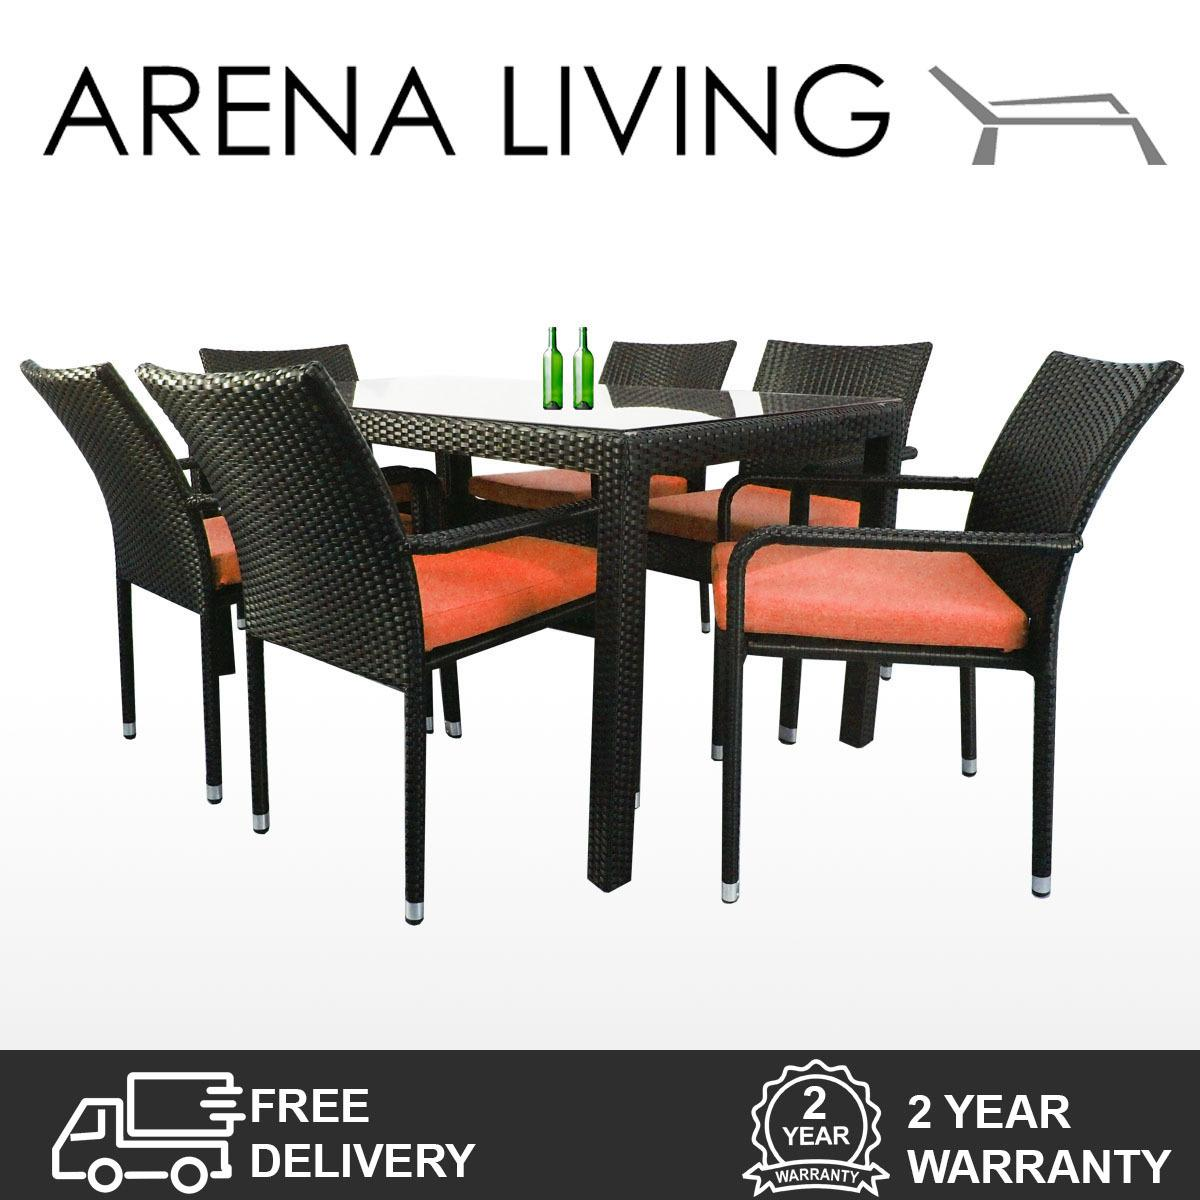 Price Comparisons Of Boulevard 6 Chair Dining Orange Cushion Outdoor Furniture By Arena Living™